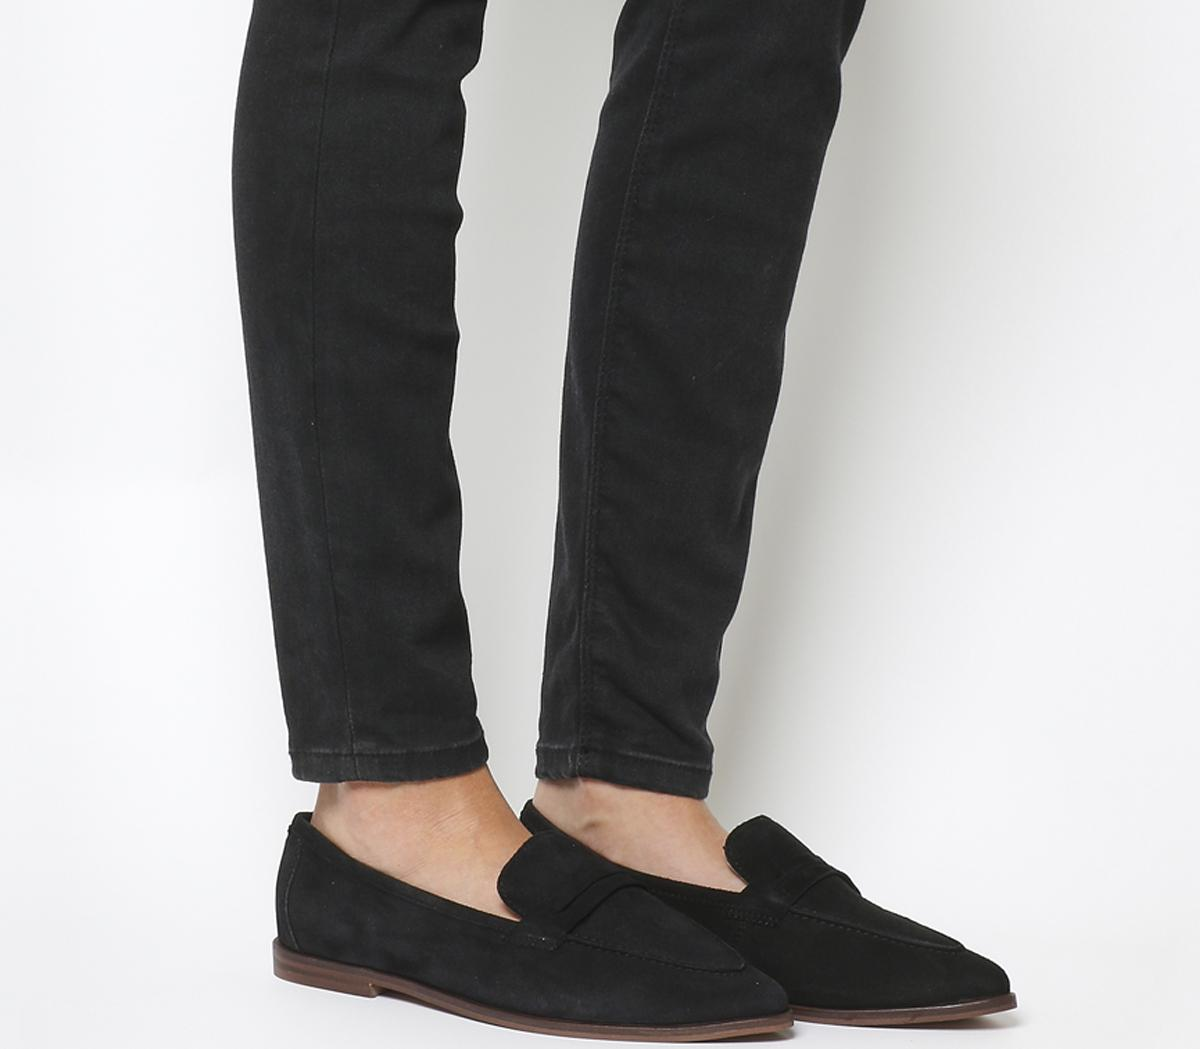 Office Falcon Point Loafers Black Suede